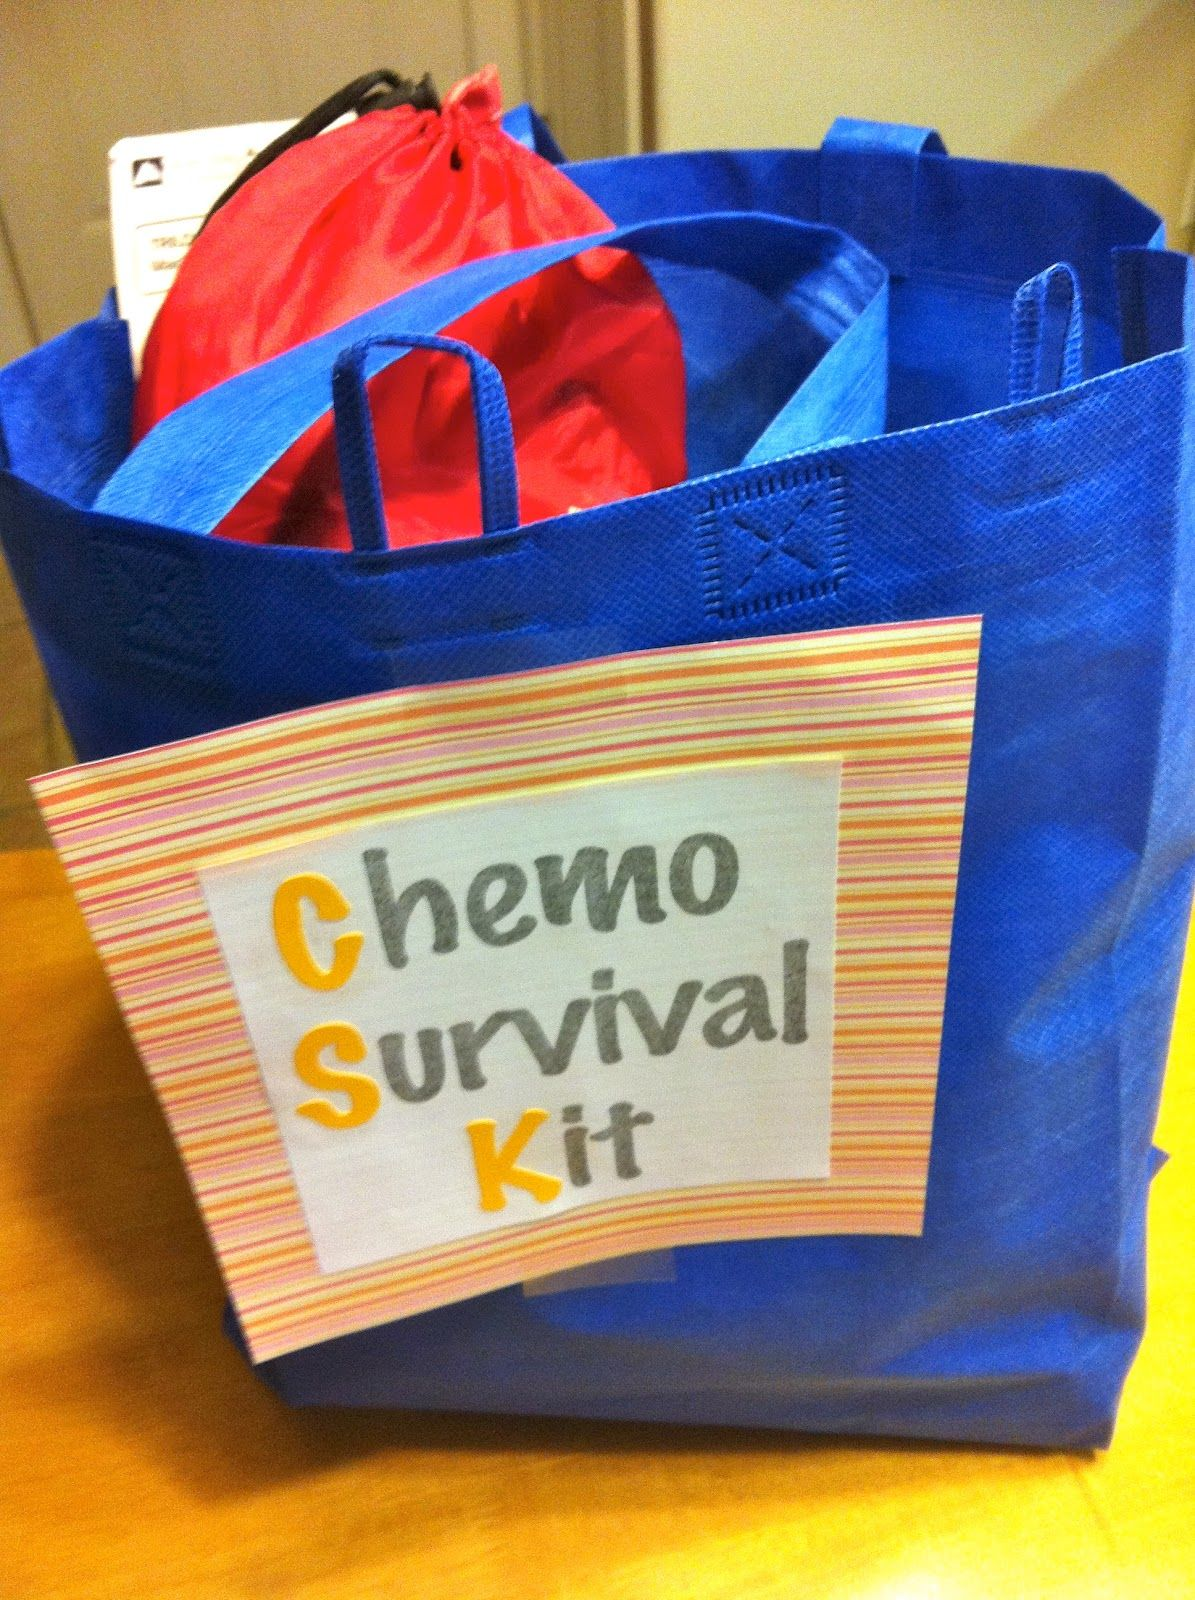 Chemo Survival Kit What A Great Idea To Help Someone Going Through